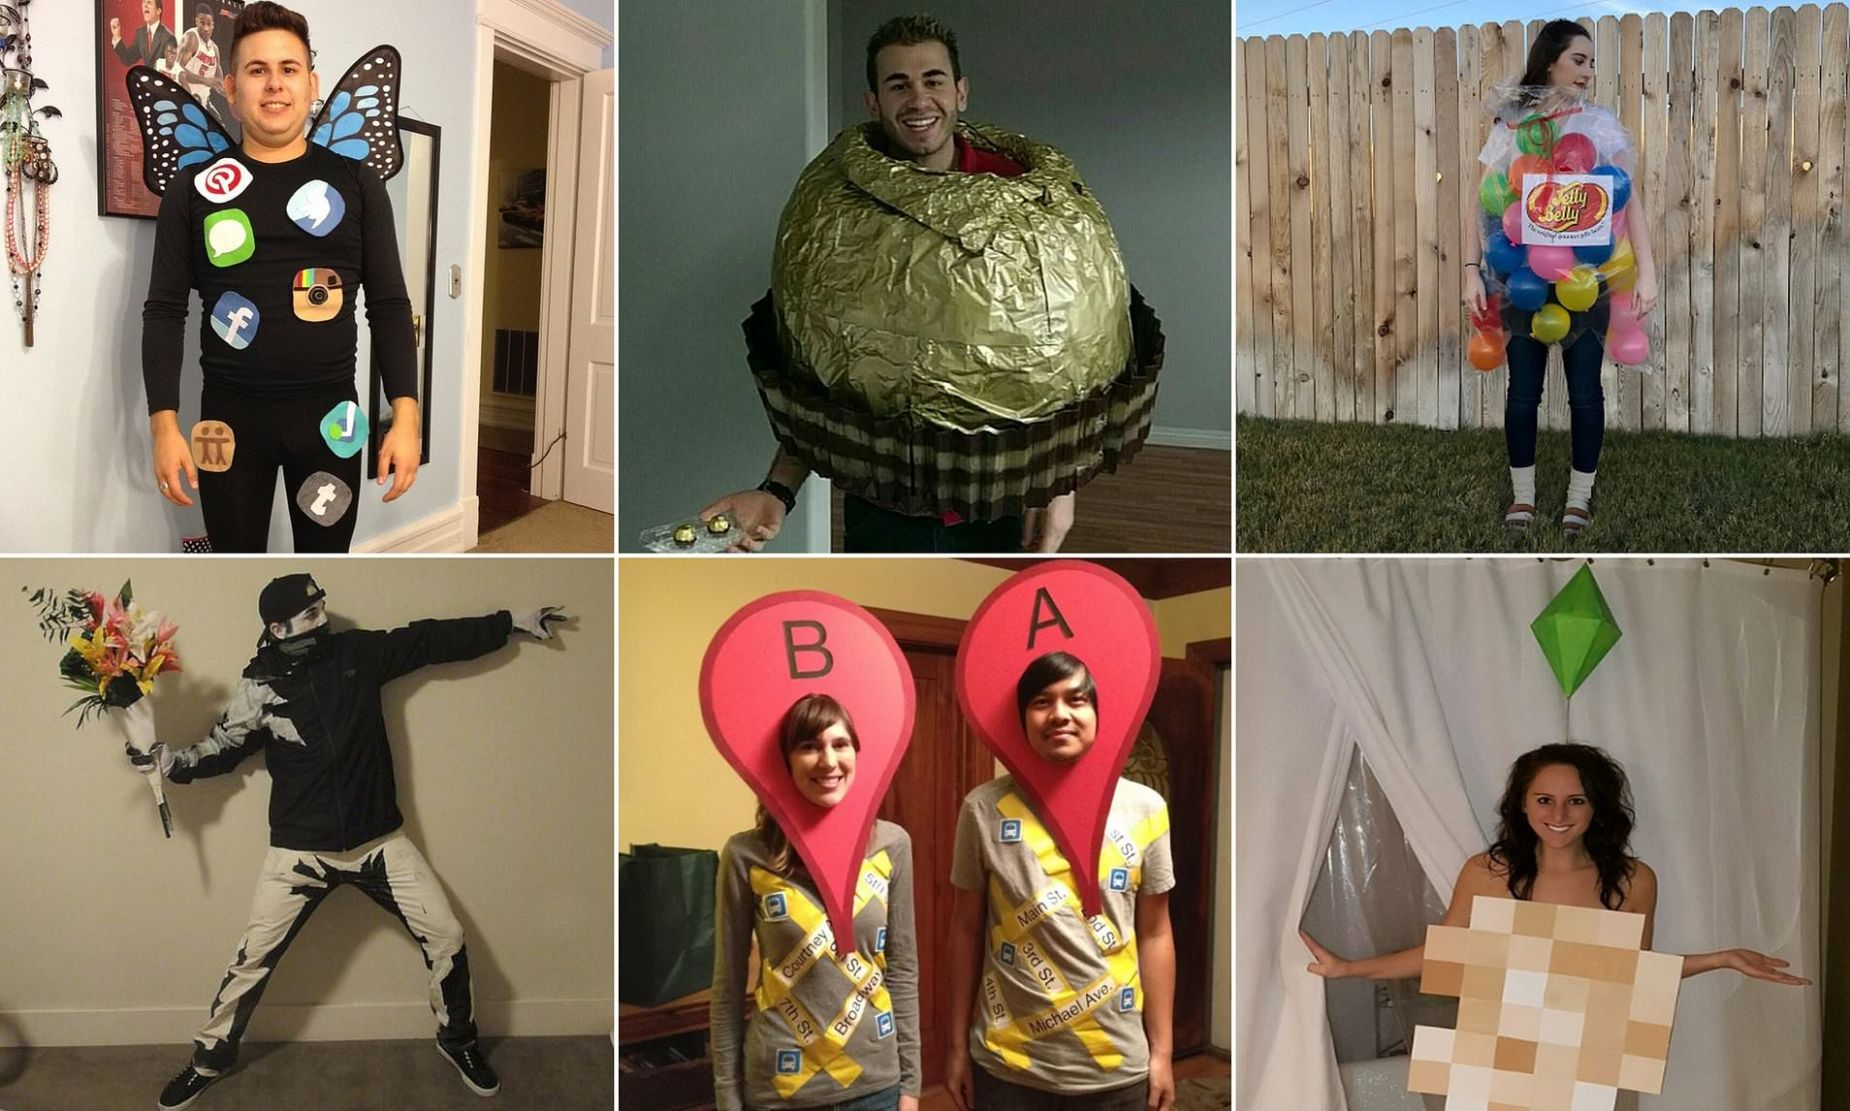 Stuck for a Halloween costume? People share their hilarious last ..